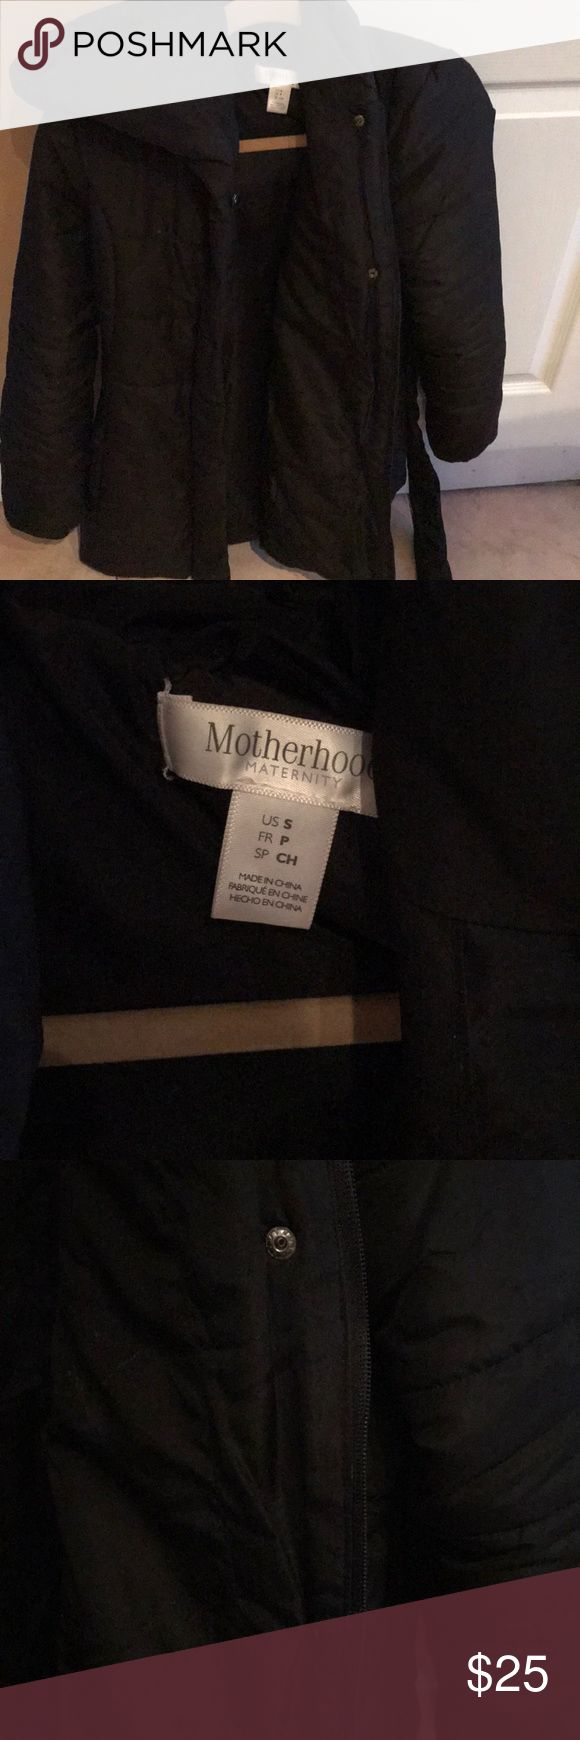 Motherhood maternity jacket size small Maternity jacket on the lighter side with hood. Has  zipper and buttons. Also has detachable strap Motherhood Maternity Jackets & Coats